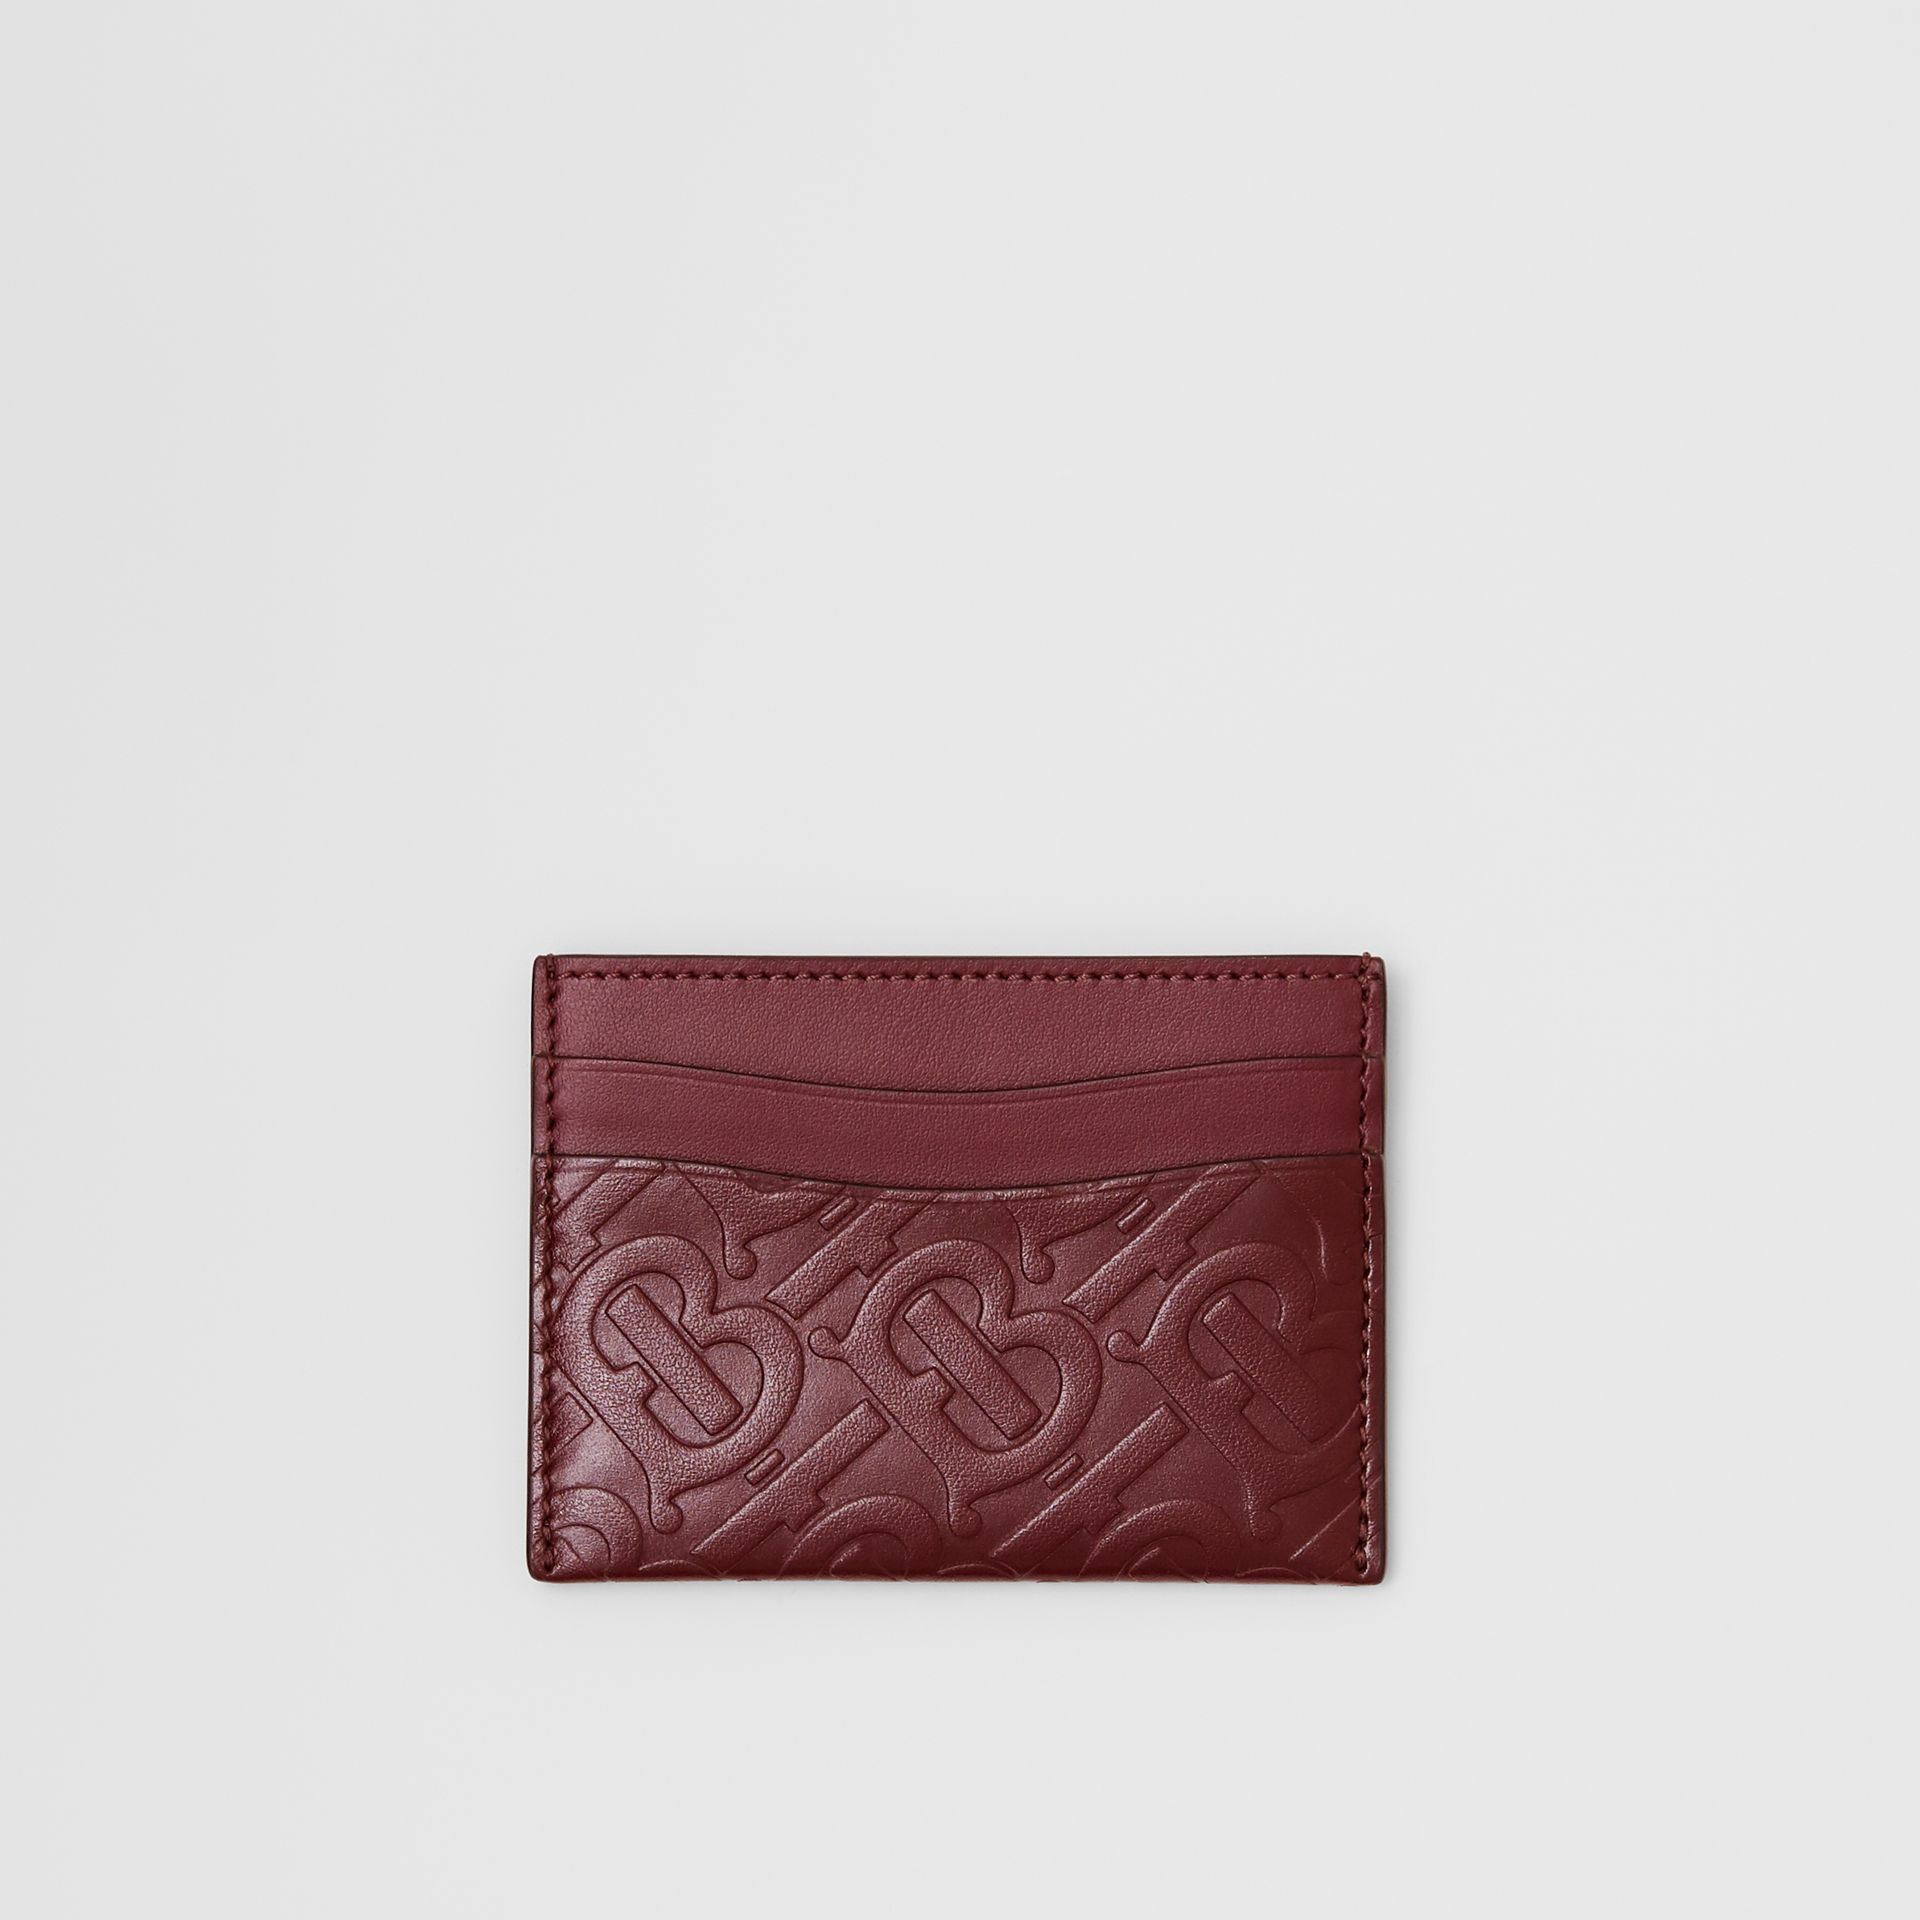 Monogram Leather Card Case in Oxblood - Women | Burberry United Kingdom - gallery image 0